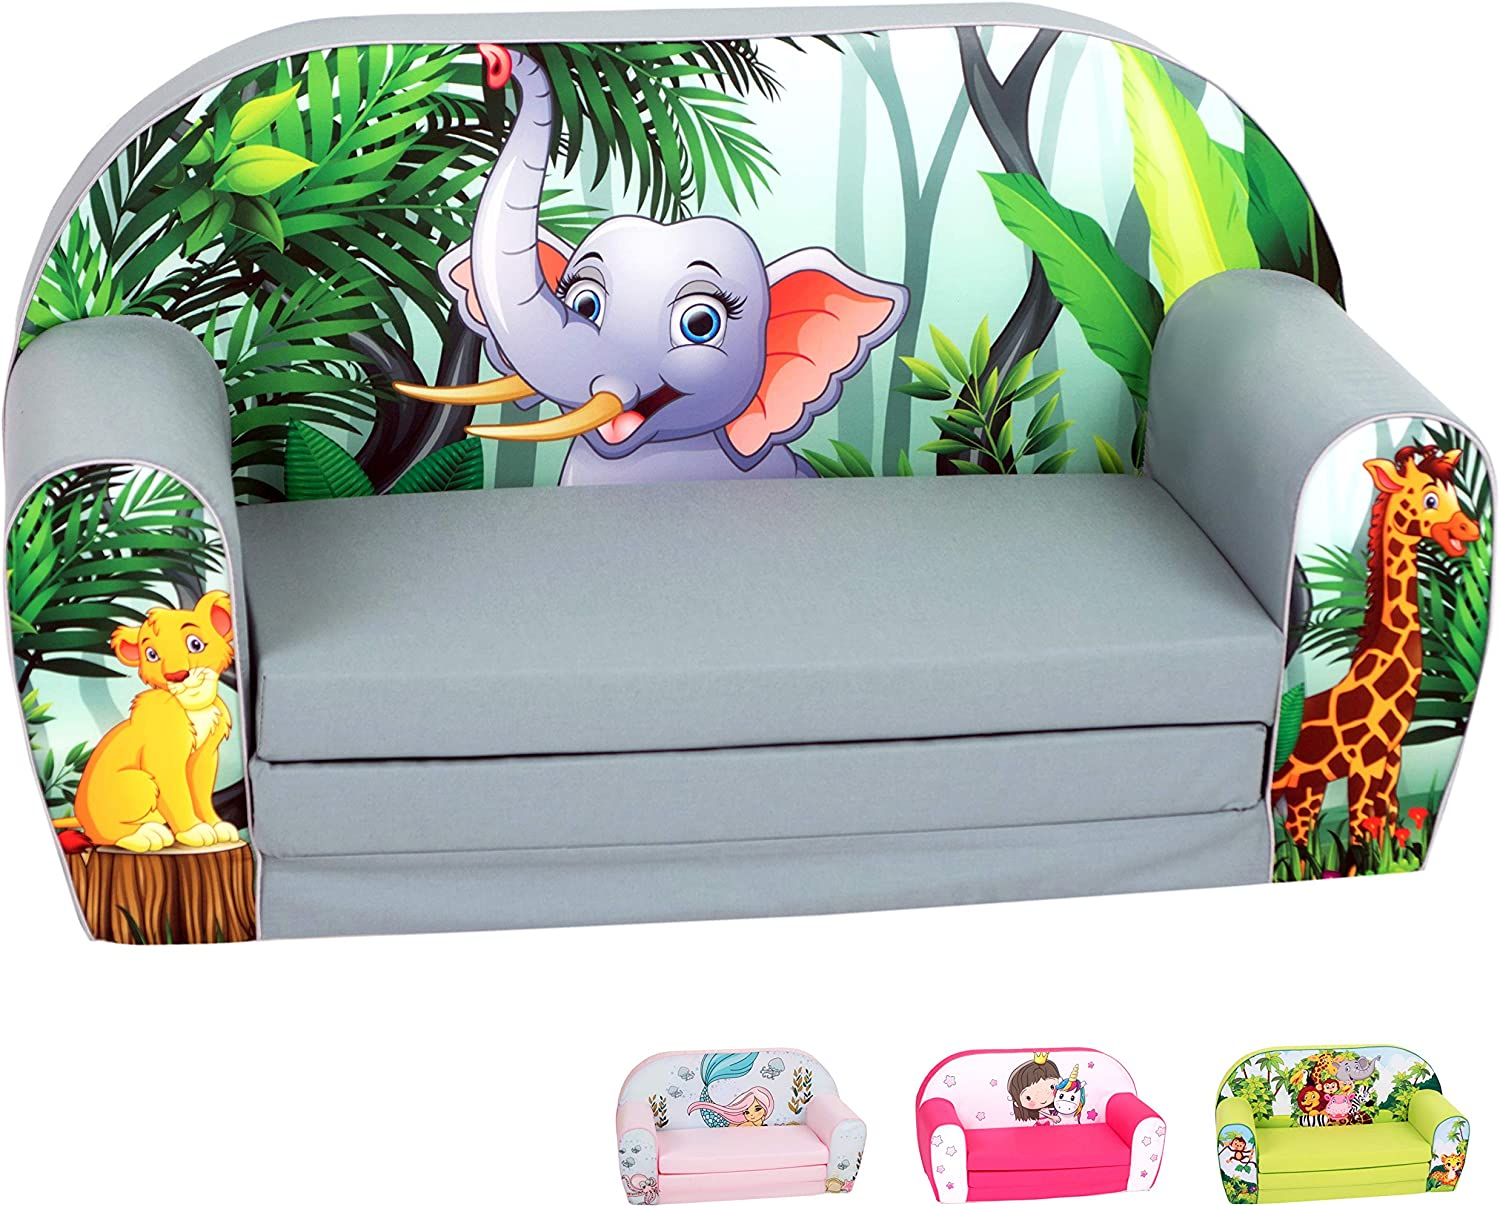 DELSIT Toddler Couch & Kids Sofa - European Made Children's 2 in 1 Flip Open Foam Double Sofa - Kids Folding Sofa, Kids Couch - Comfy fold Out Lounge (Adorable Elephant)